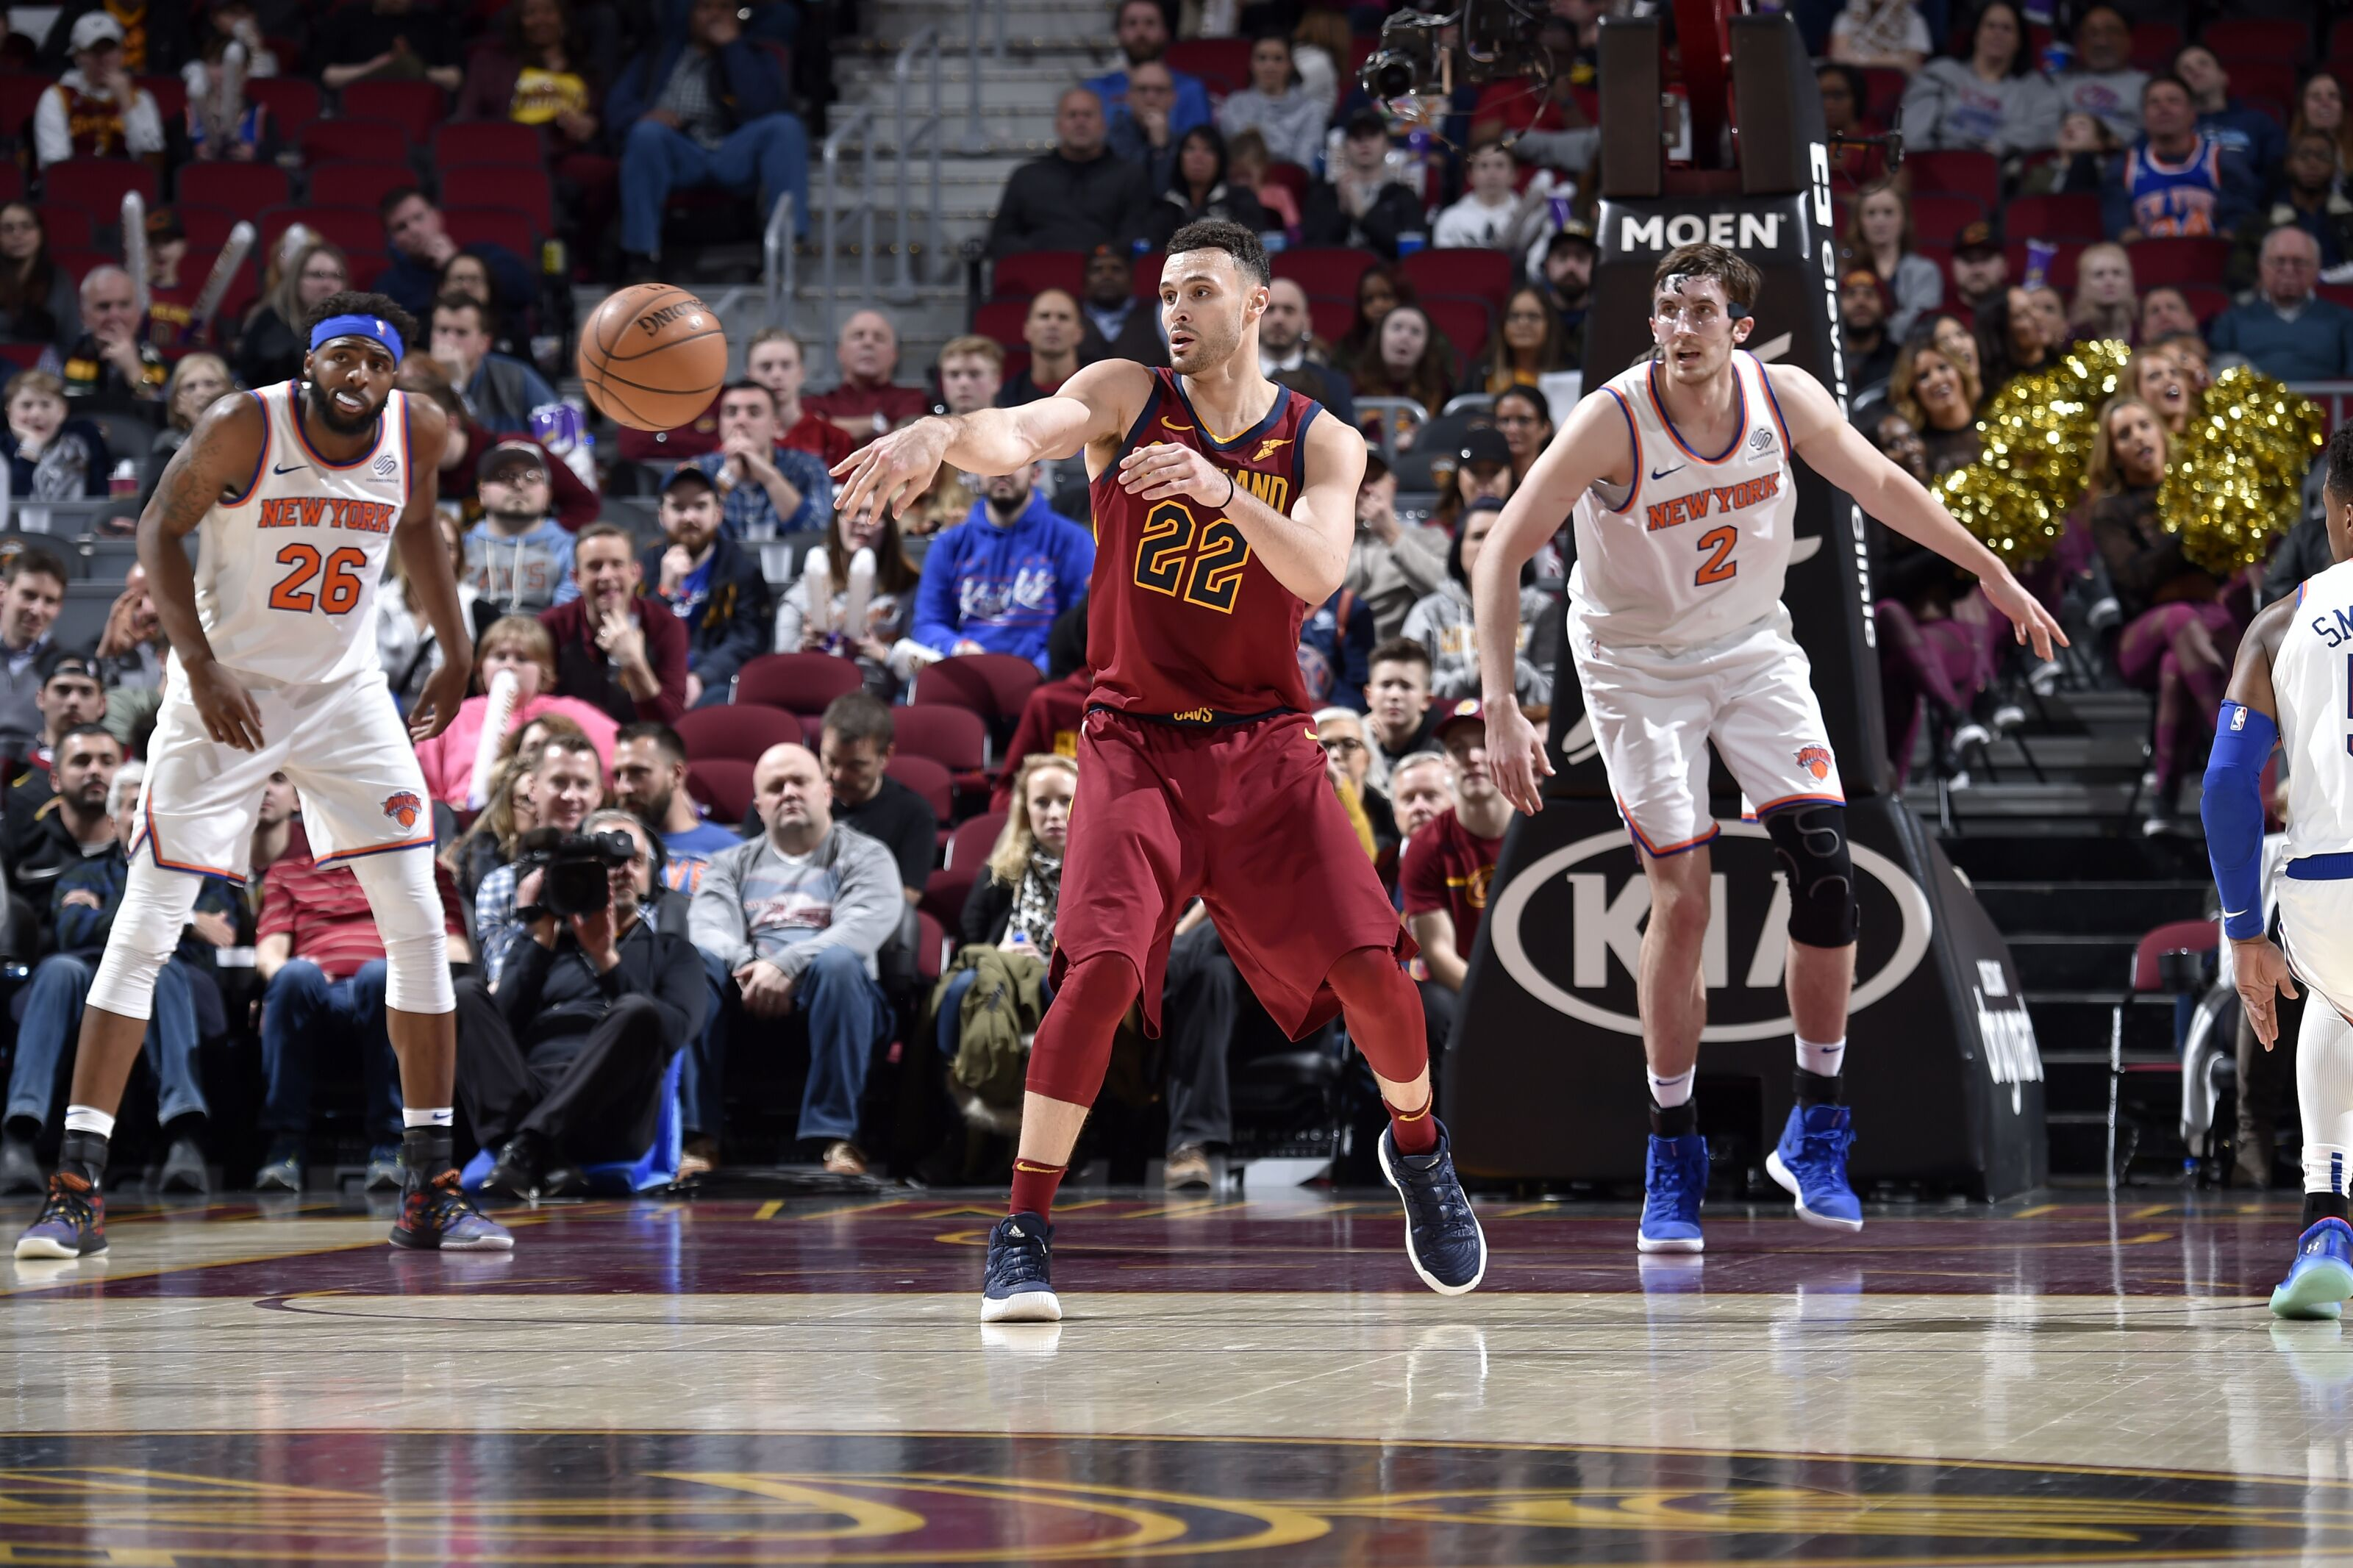 Cavs: Larry Nance Jr. should keep playing starter's minutes for foreseeable future